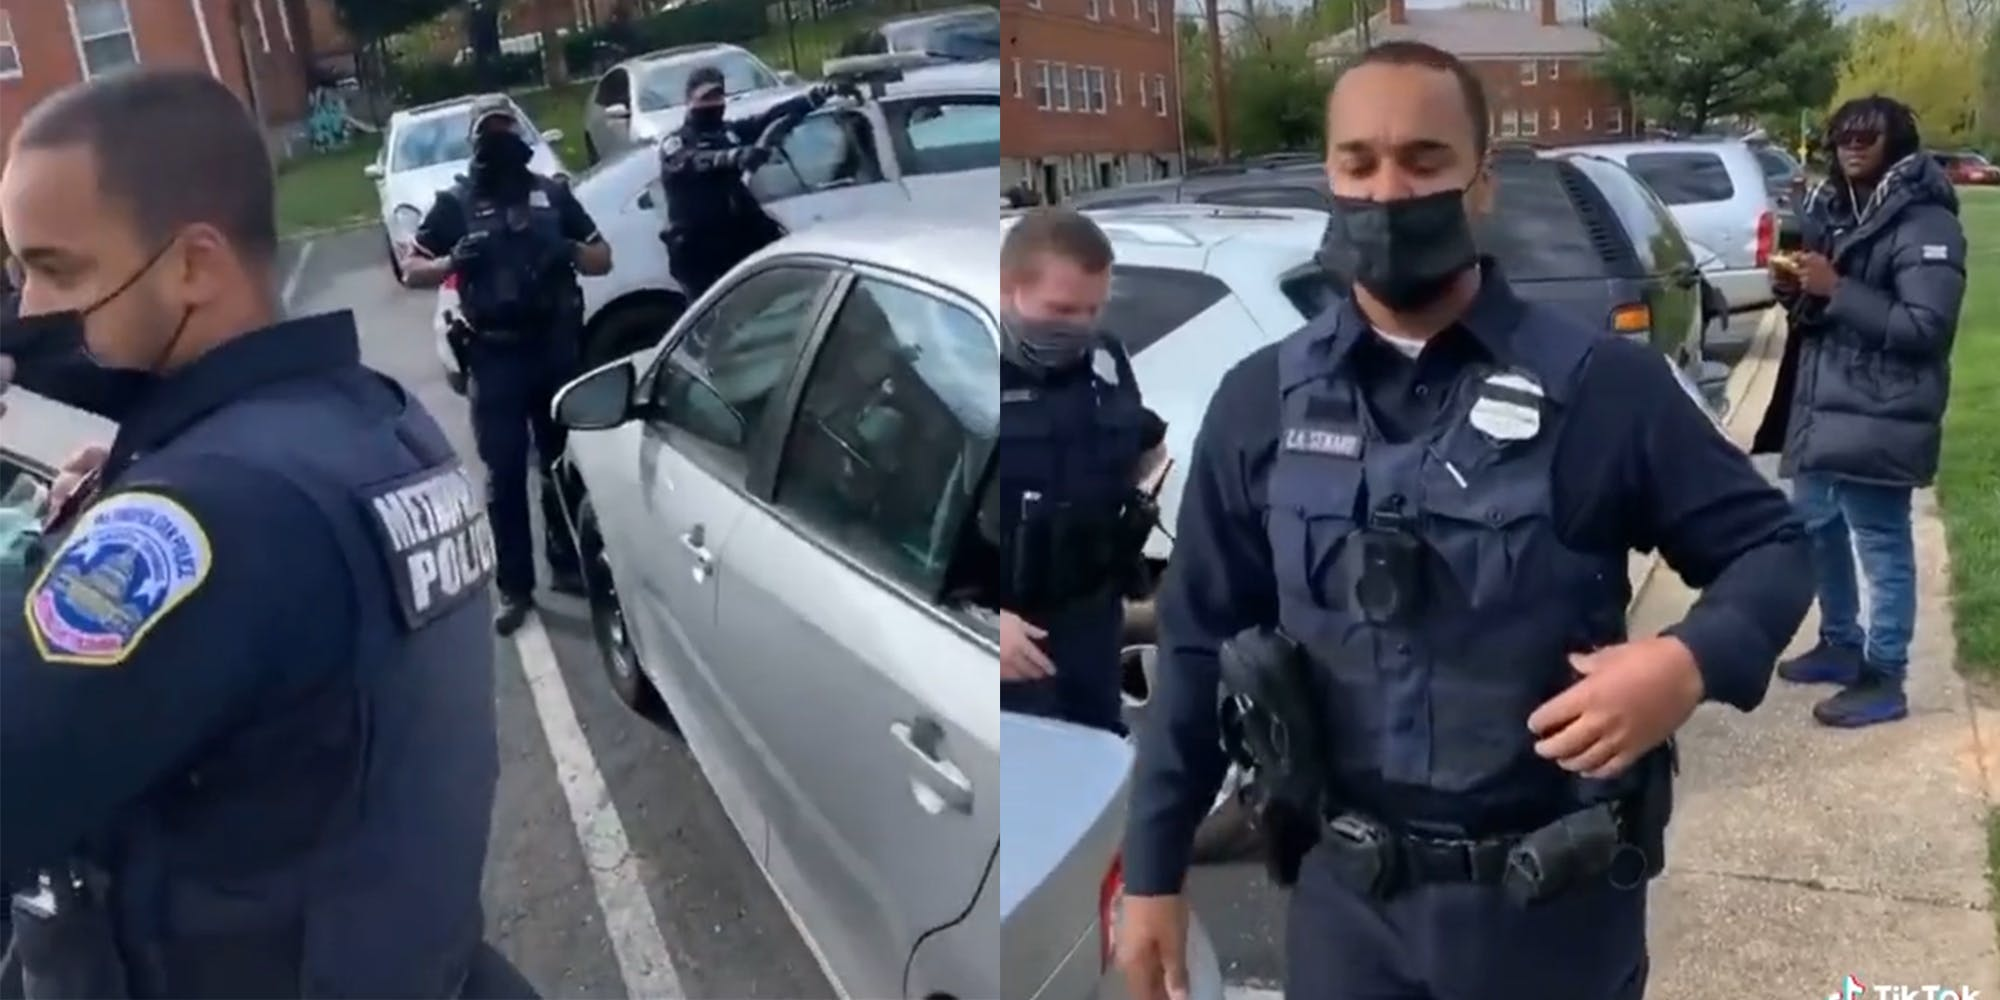 police officers standing around vehicles